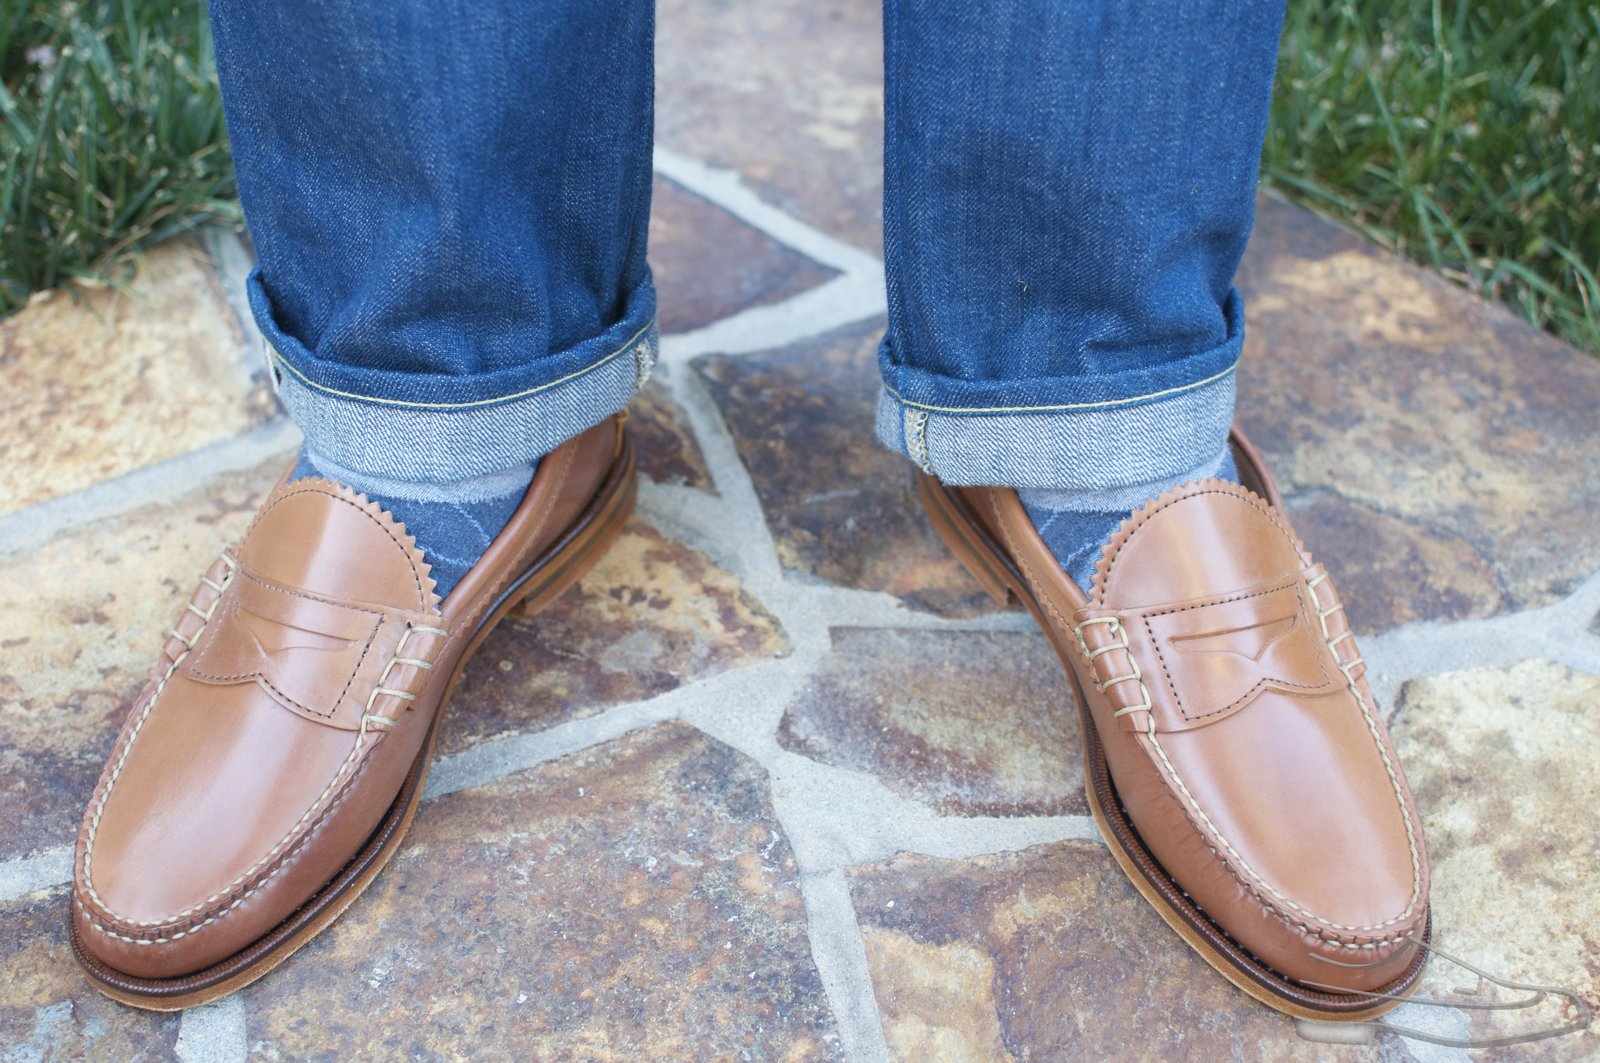 Rancourt Natural Shell Cordovan Beef-Roll Loafers - 2021-05-25 - 12.jpg